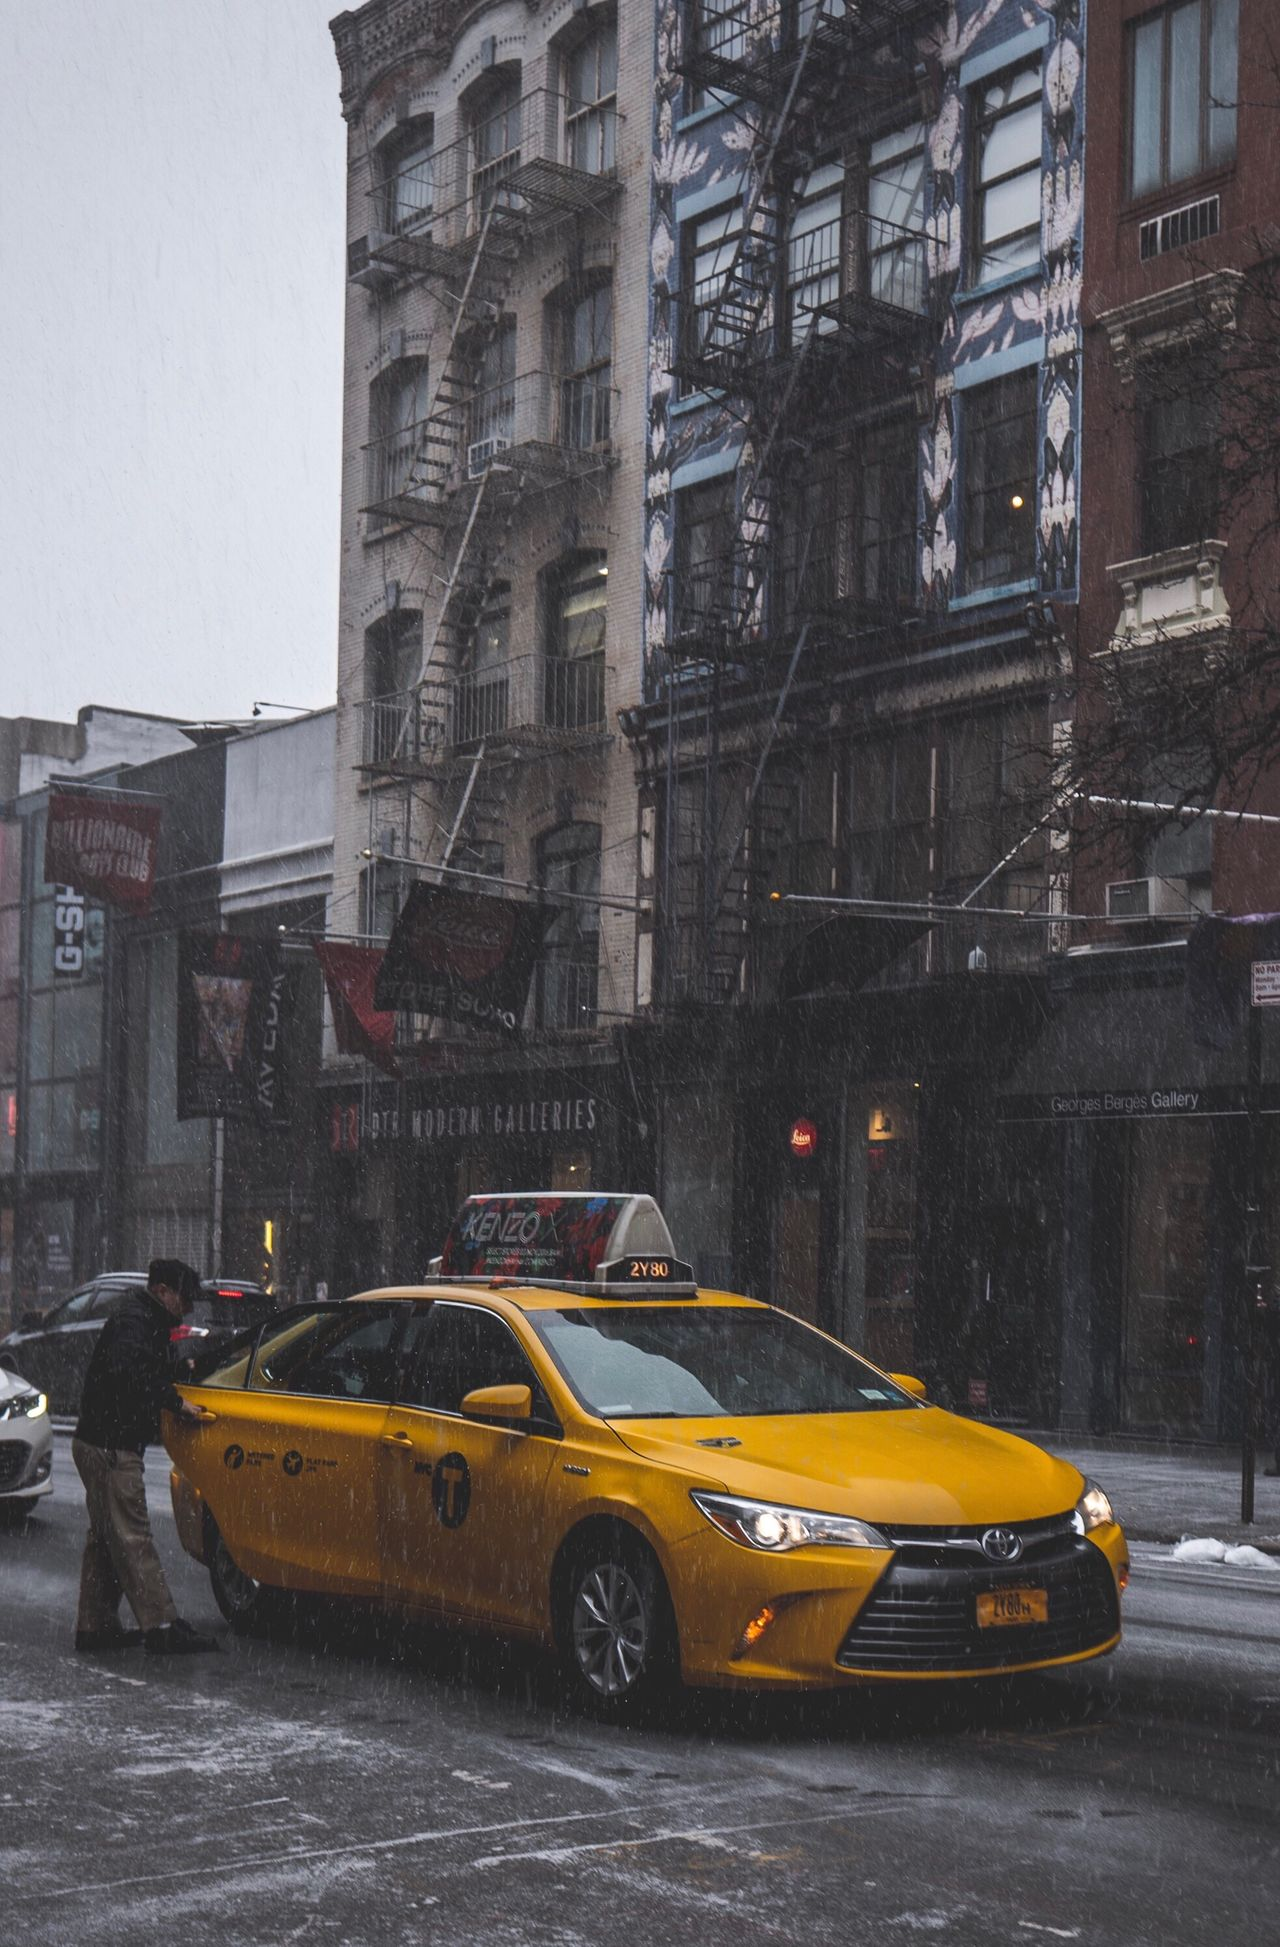 Building Exterior City Street Built Structure Architecture Taxi Yellow Transportation City Street Yellow Taxi Mode Of Transport Car Land Vehicle City Life Day Wet Outdoors Rainy Season No People